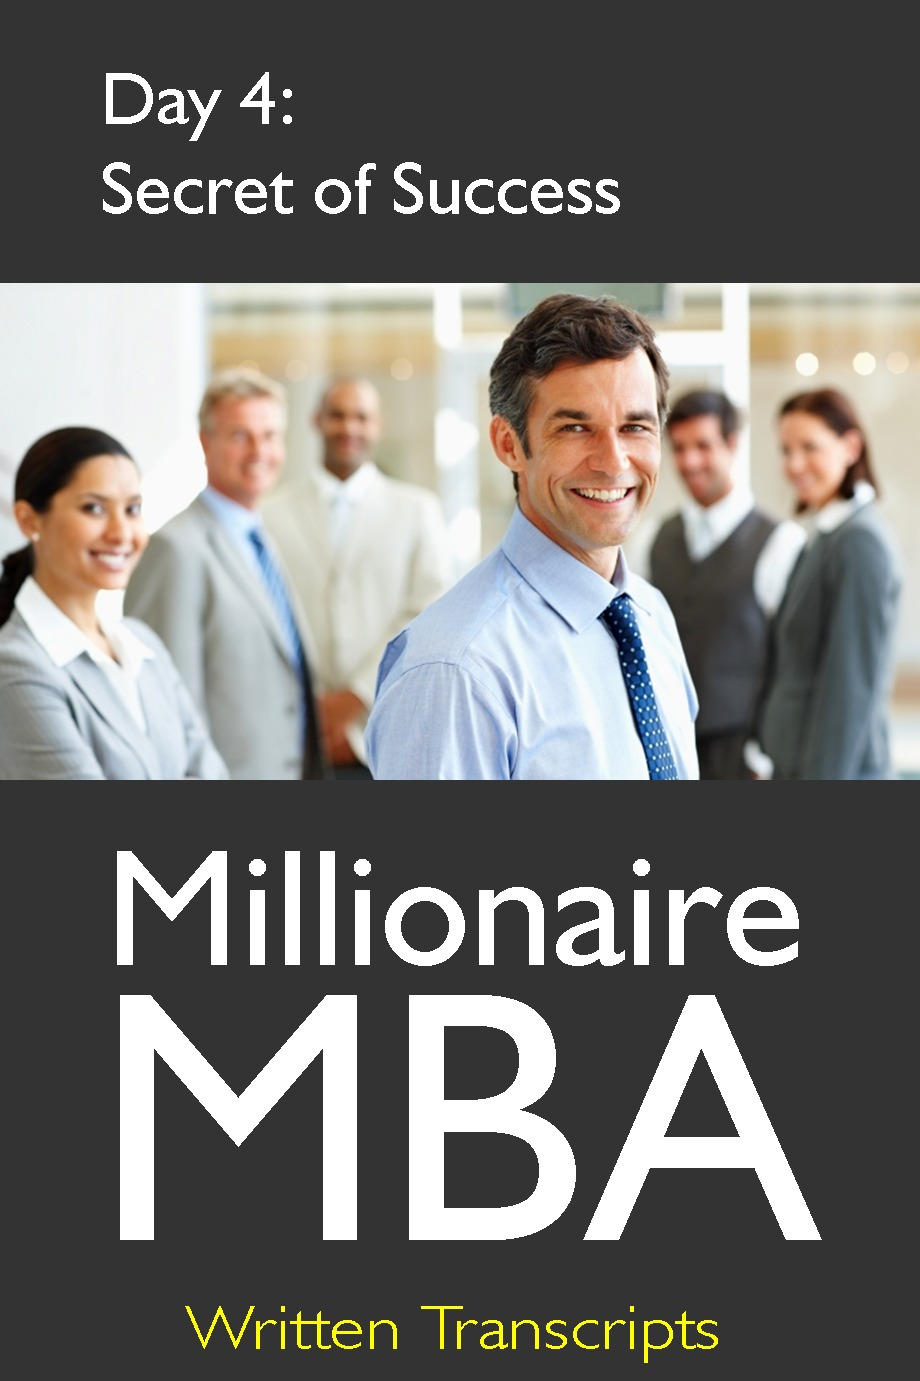 Millionaire MBA Day 4: Secret of Success